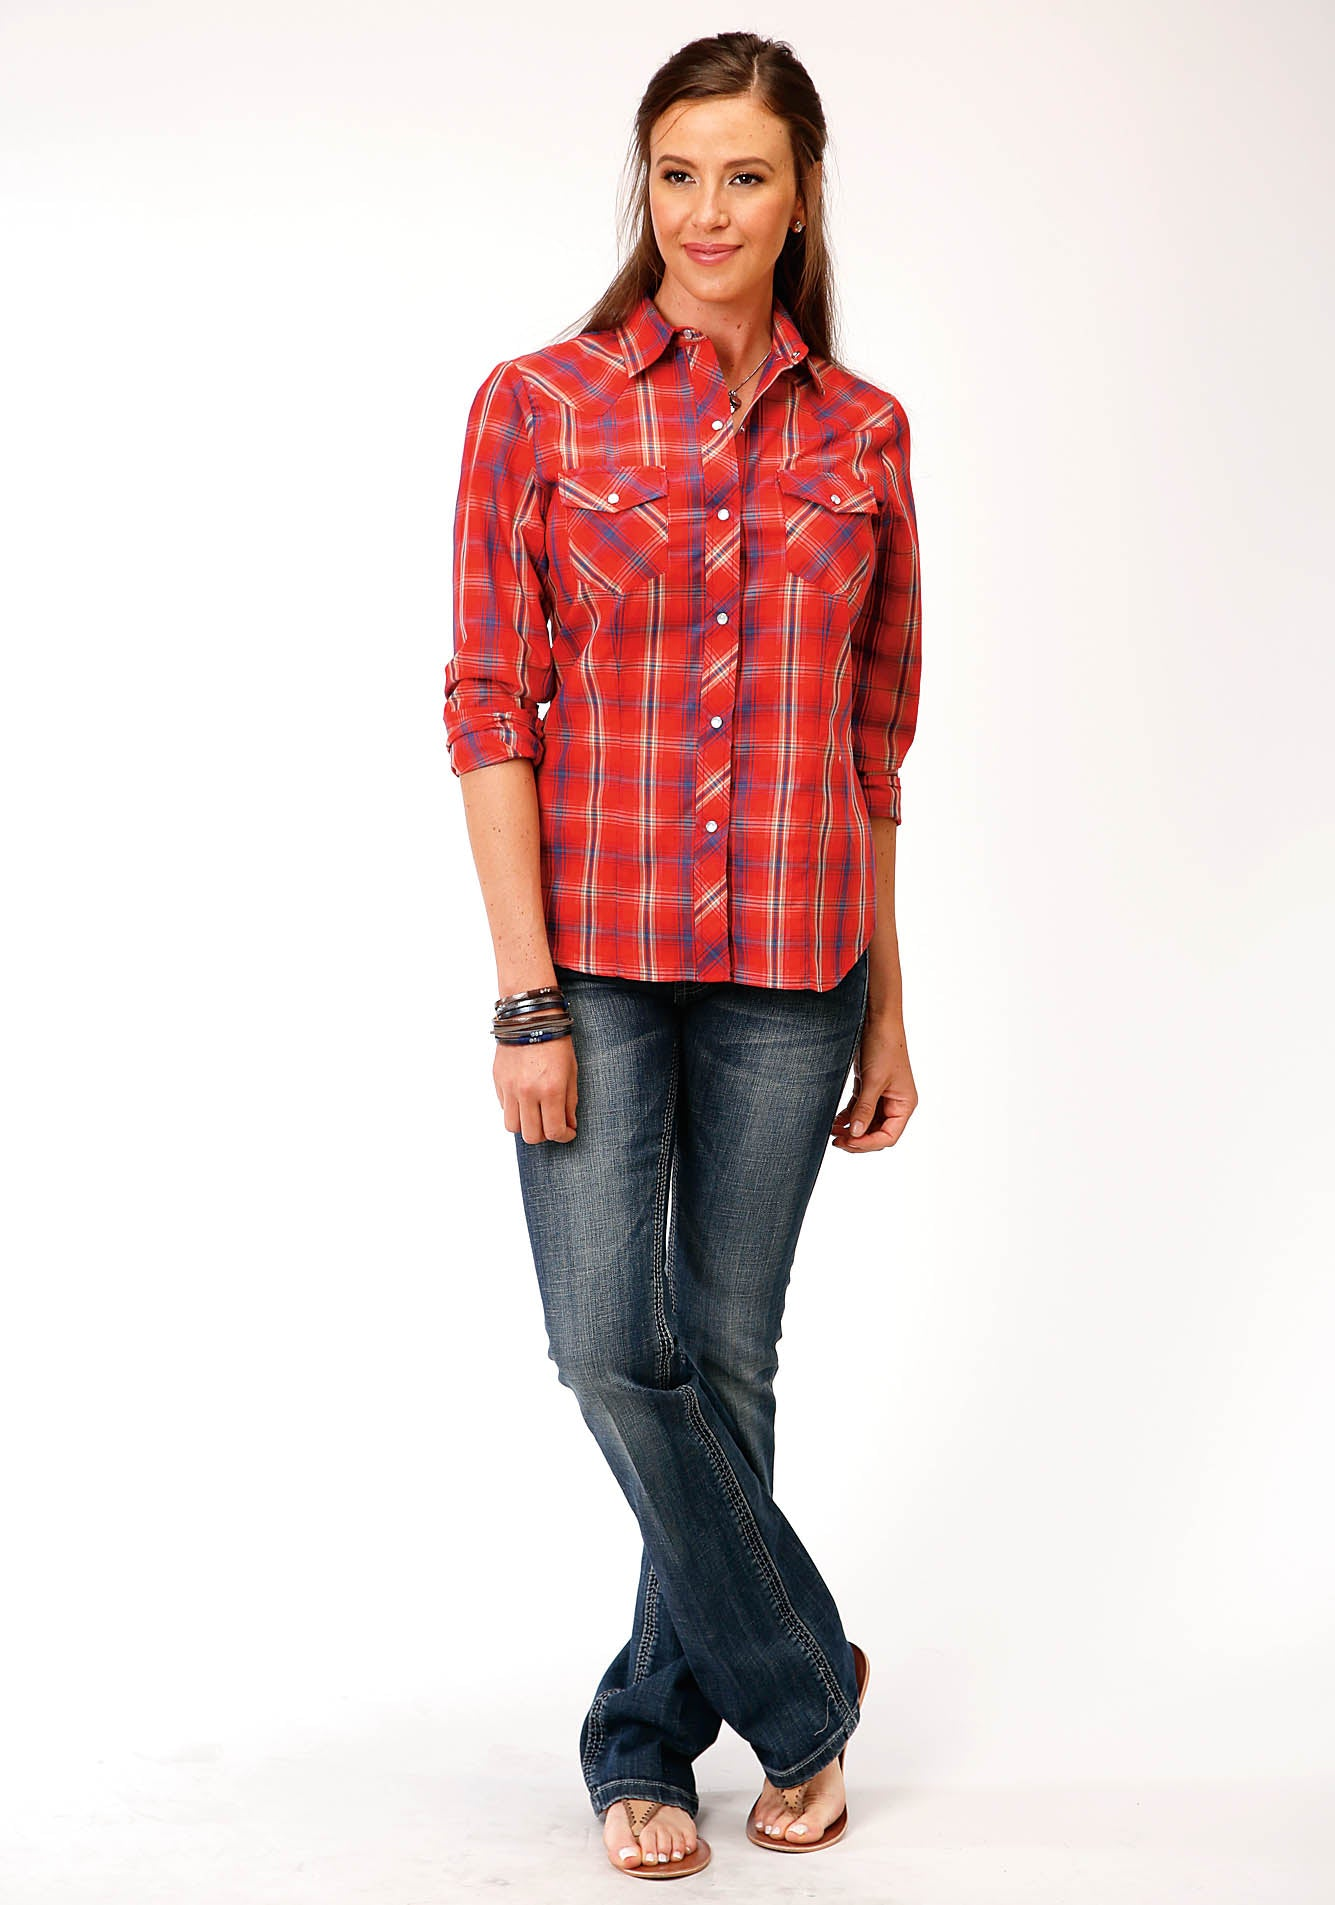 ROPER WOMENS RED 00210 RED, BLUE, TAN AND WHITE PLAID KARMAN CLASSICS- 55/45 PLAIDS LONG SLEEVE